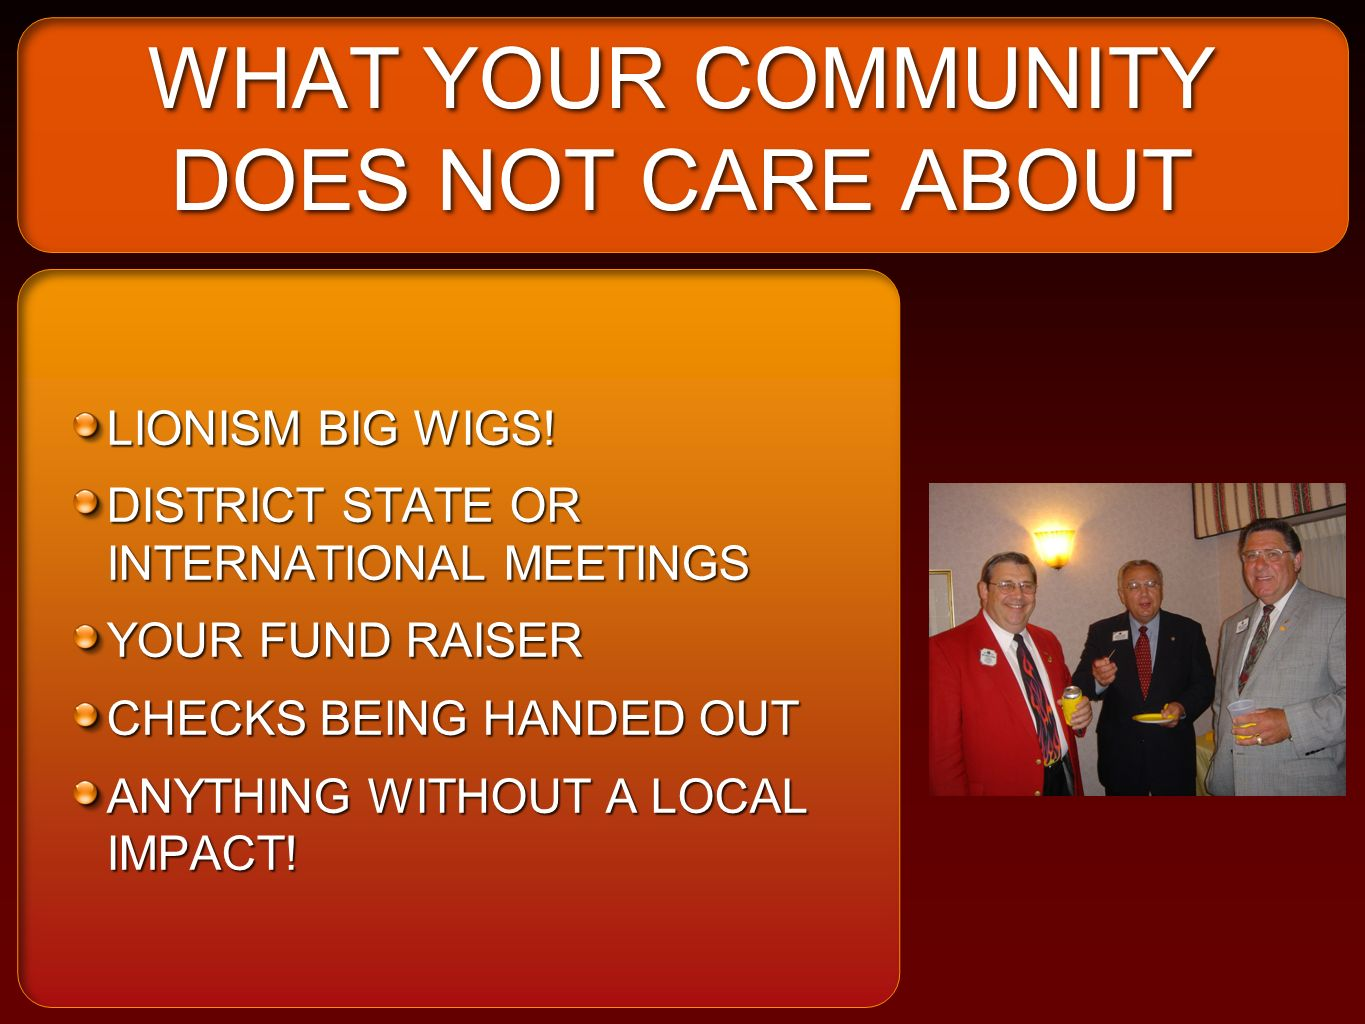 WHAT YOUR COMMUNITY DOES NOT CARE ABOUT LIONISM BIG WIGS! DISTRICT STATE OR INTERNATIONAL MEETINGS YOUR FUND RAISER CHECKS BEING HANDED OUT ANYTHING W